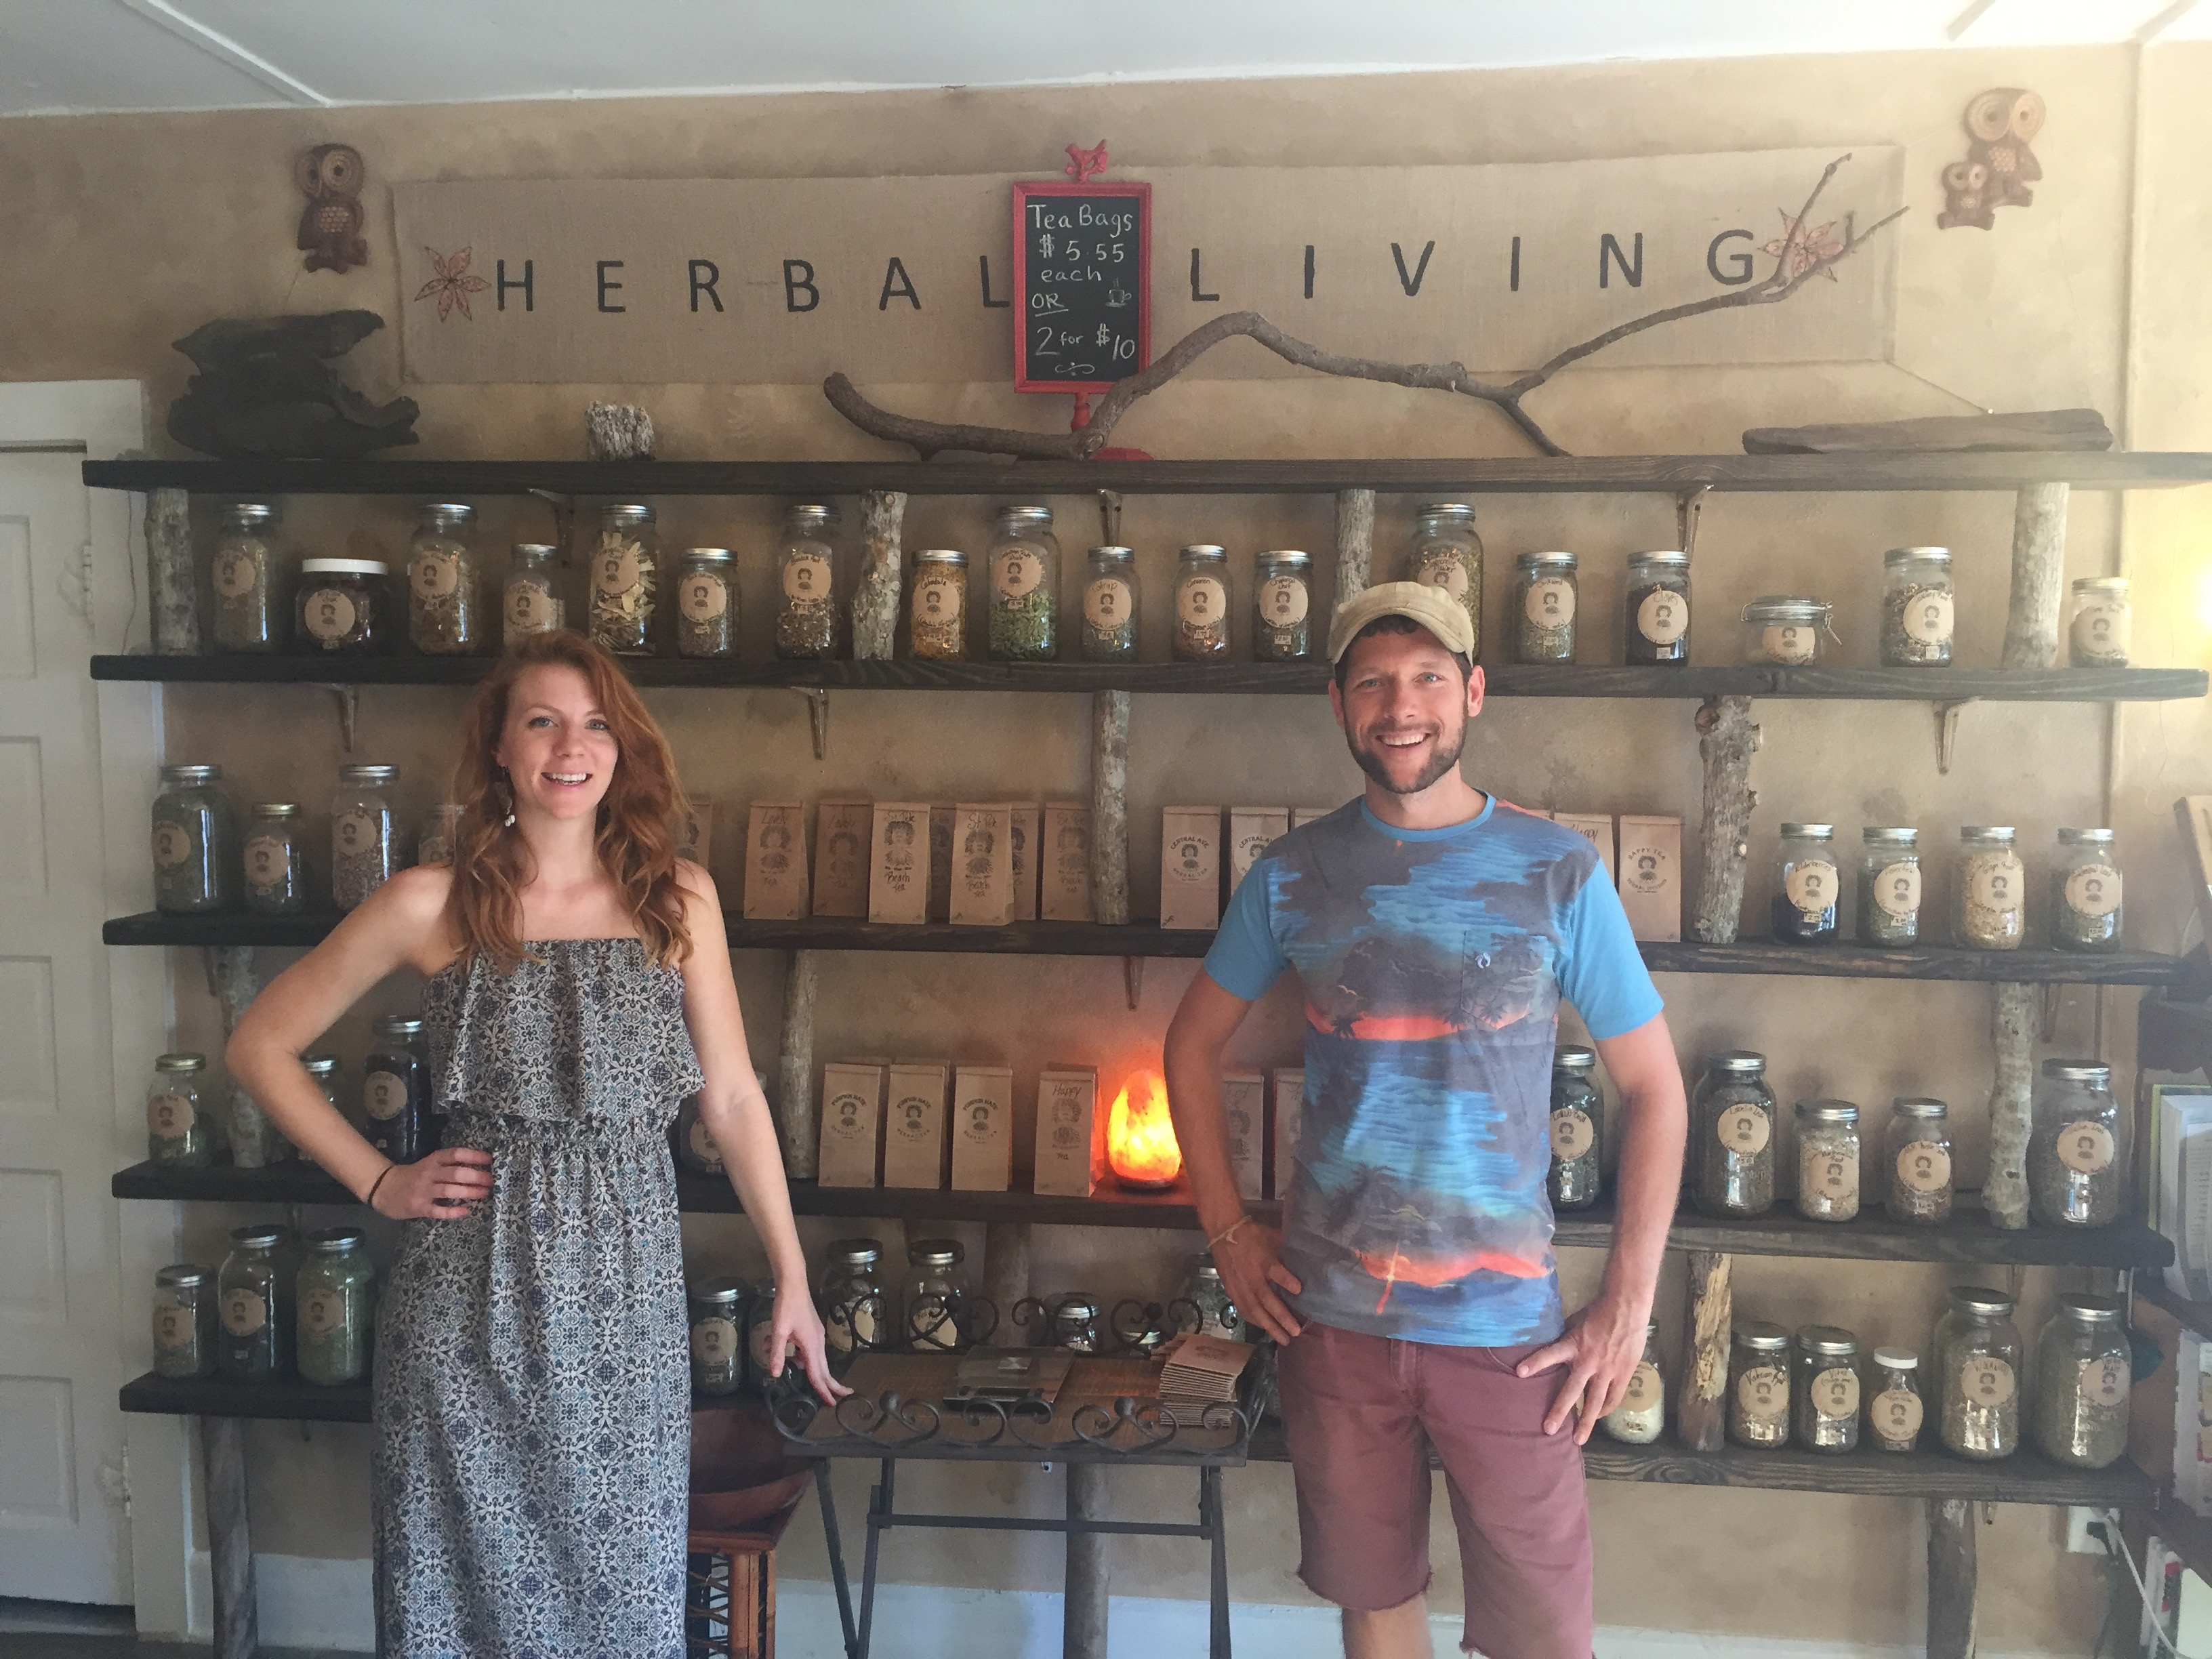 Local business plants herbal roots in St. Petersburg